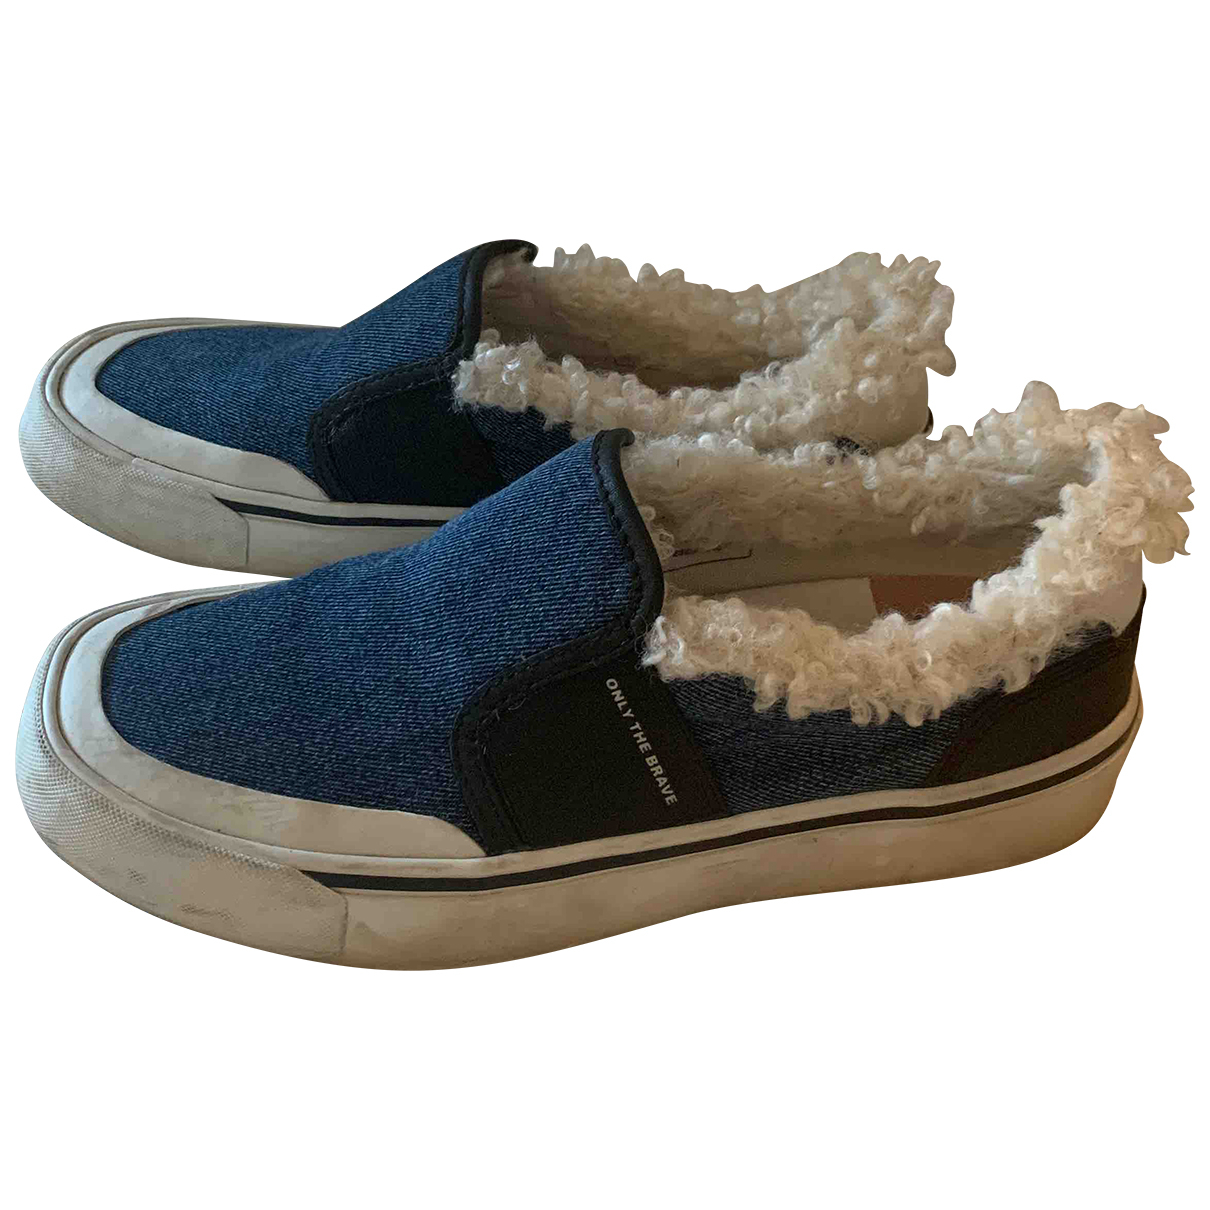 Diesel N Blue Cloth Flats for Women 39 EU